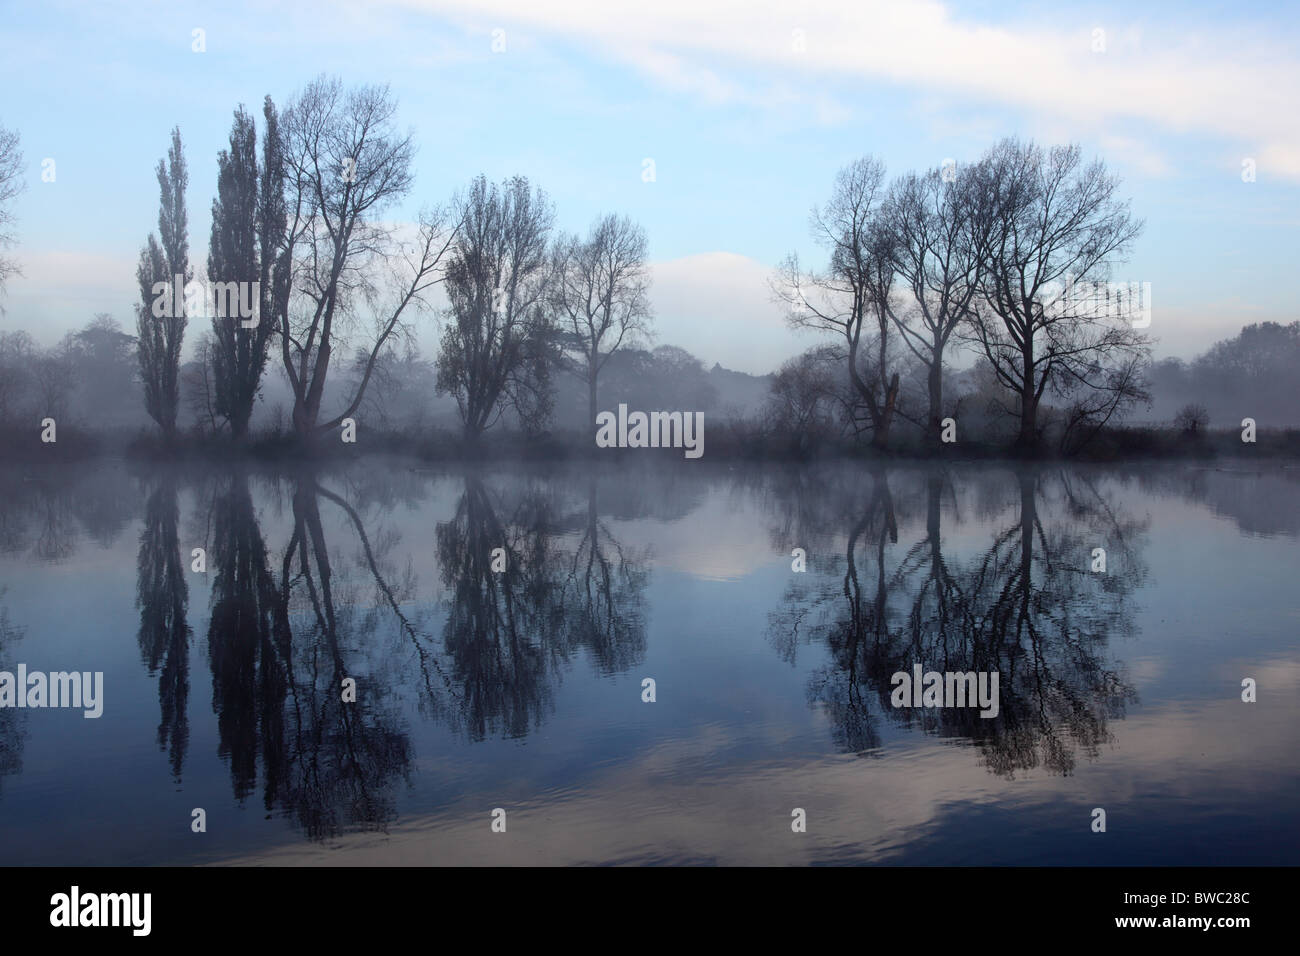 Early morning view across the River Thames from Kew Gardens looking towards Syon House, Richmond-on-Thames, London. - Stock Image